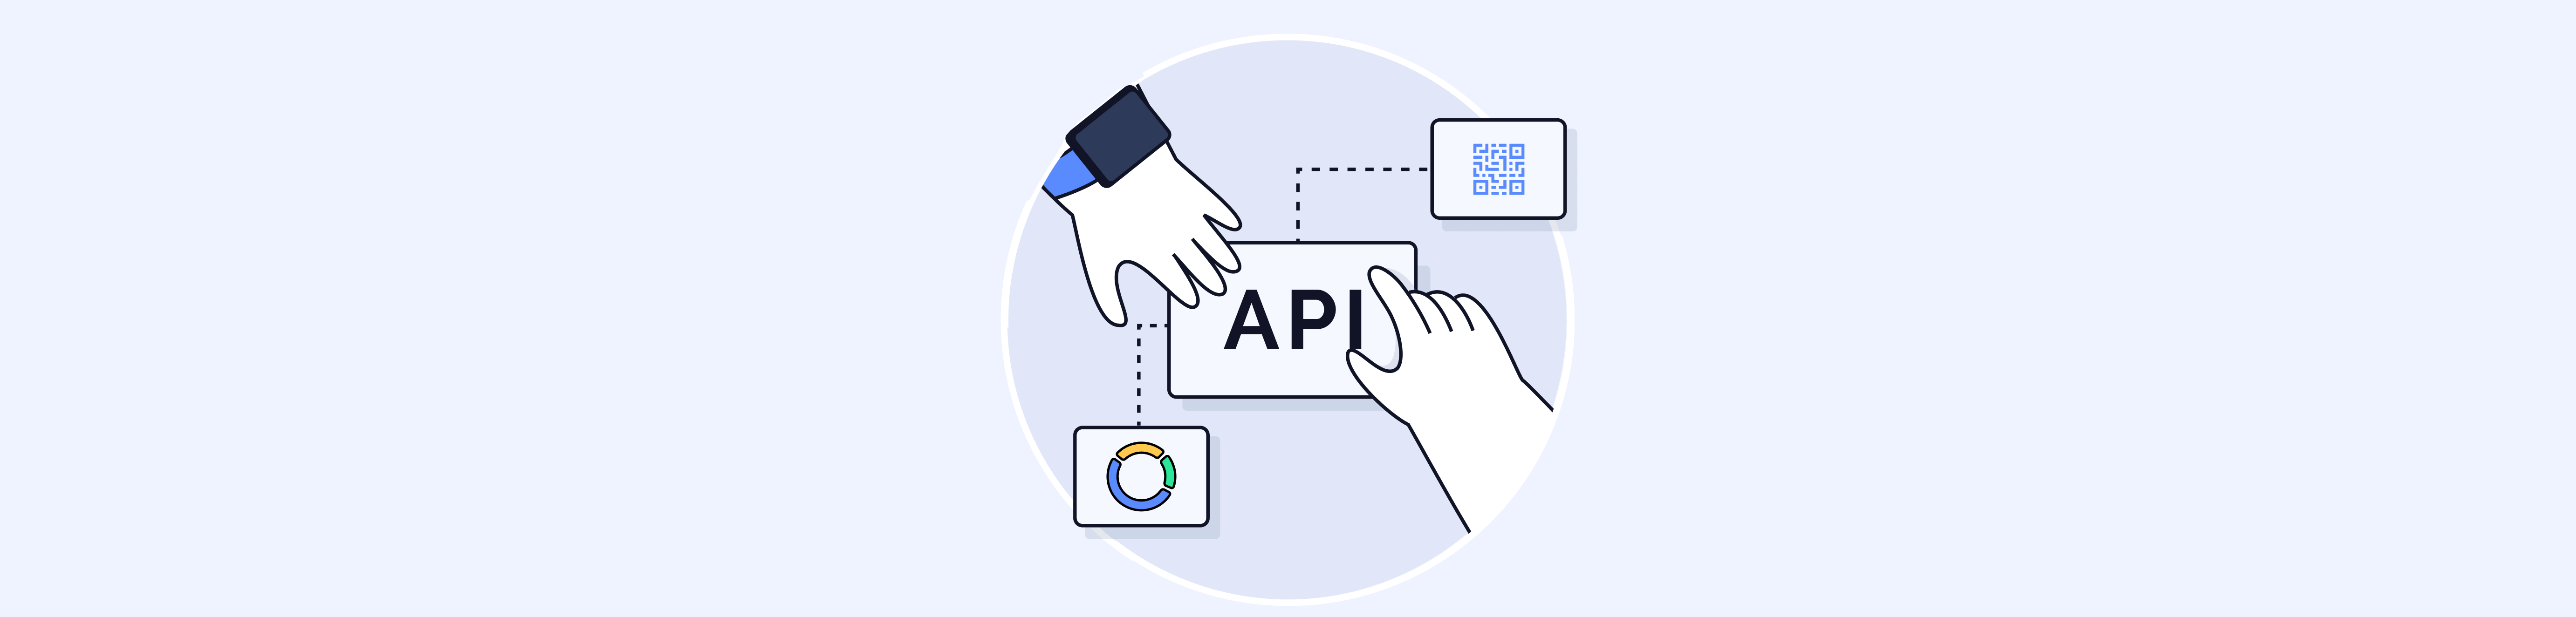 How APIs have changed the way people conduct business